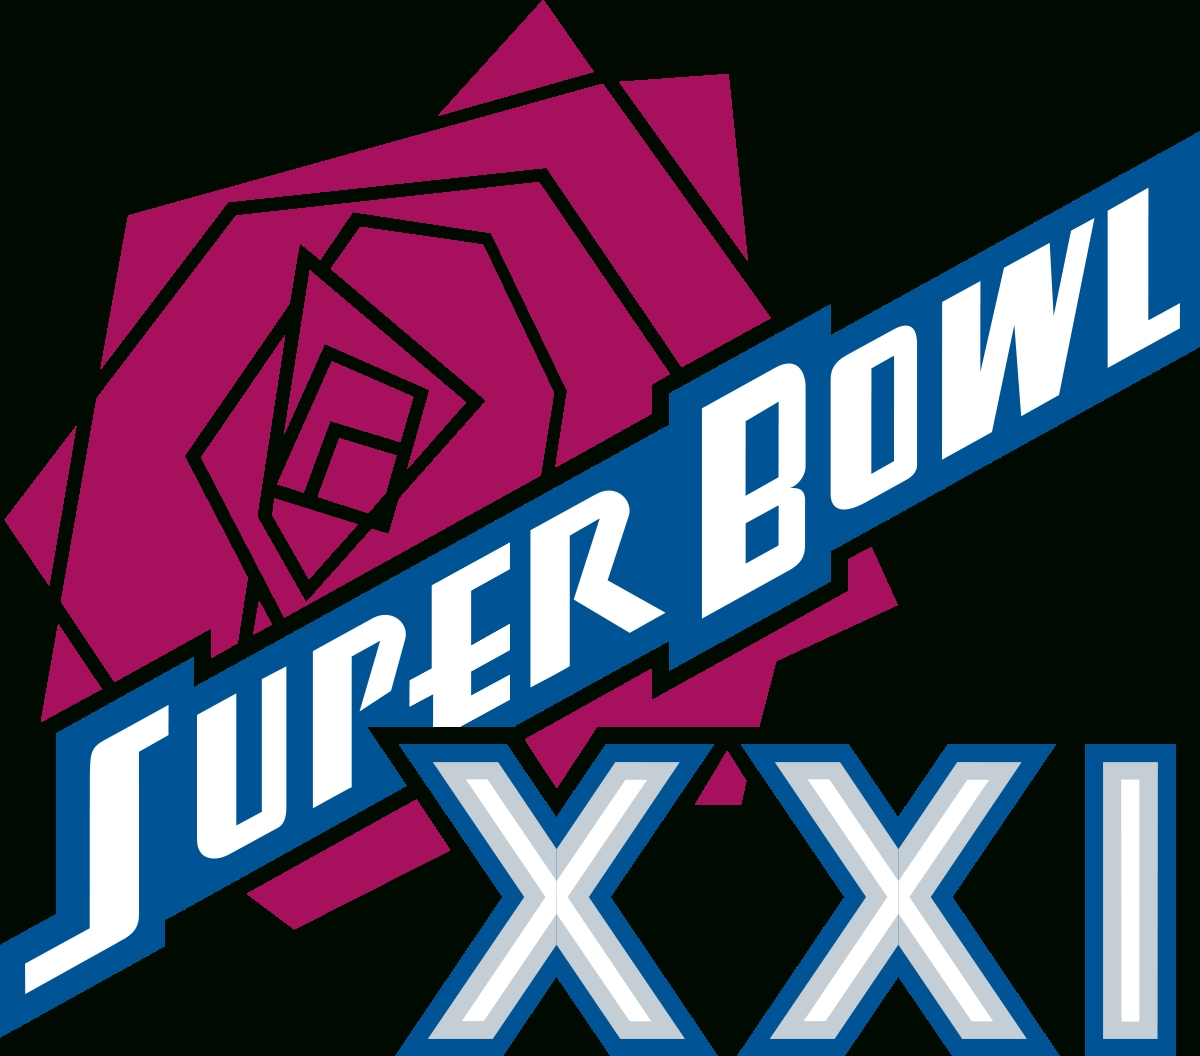 Super Bowl Xxi - Wikipedia pertaining to Super Bowl Mvp Vote Text Number